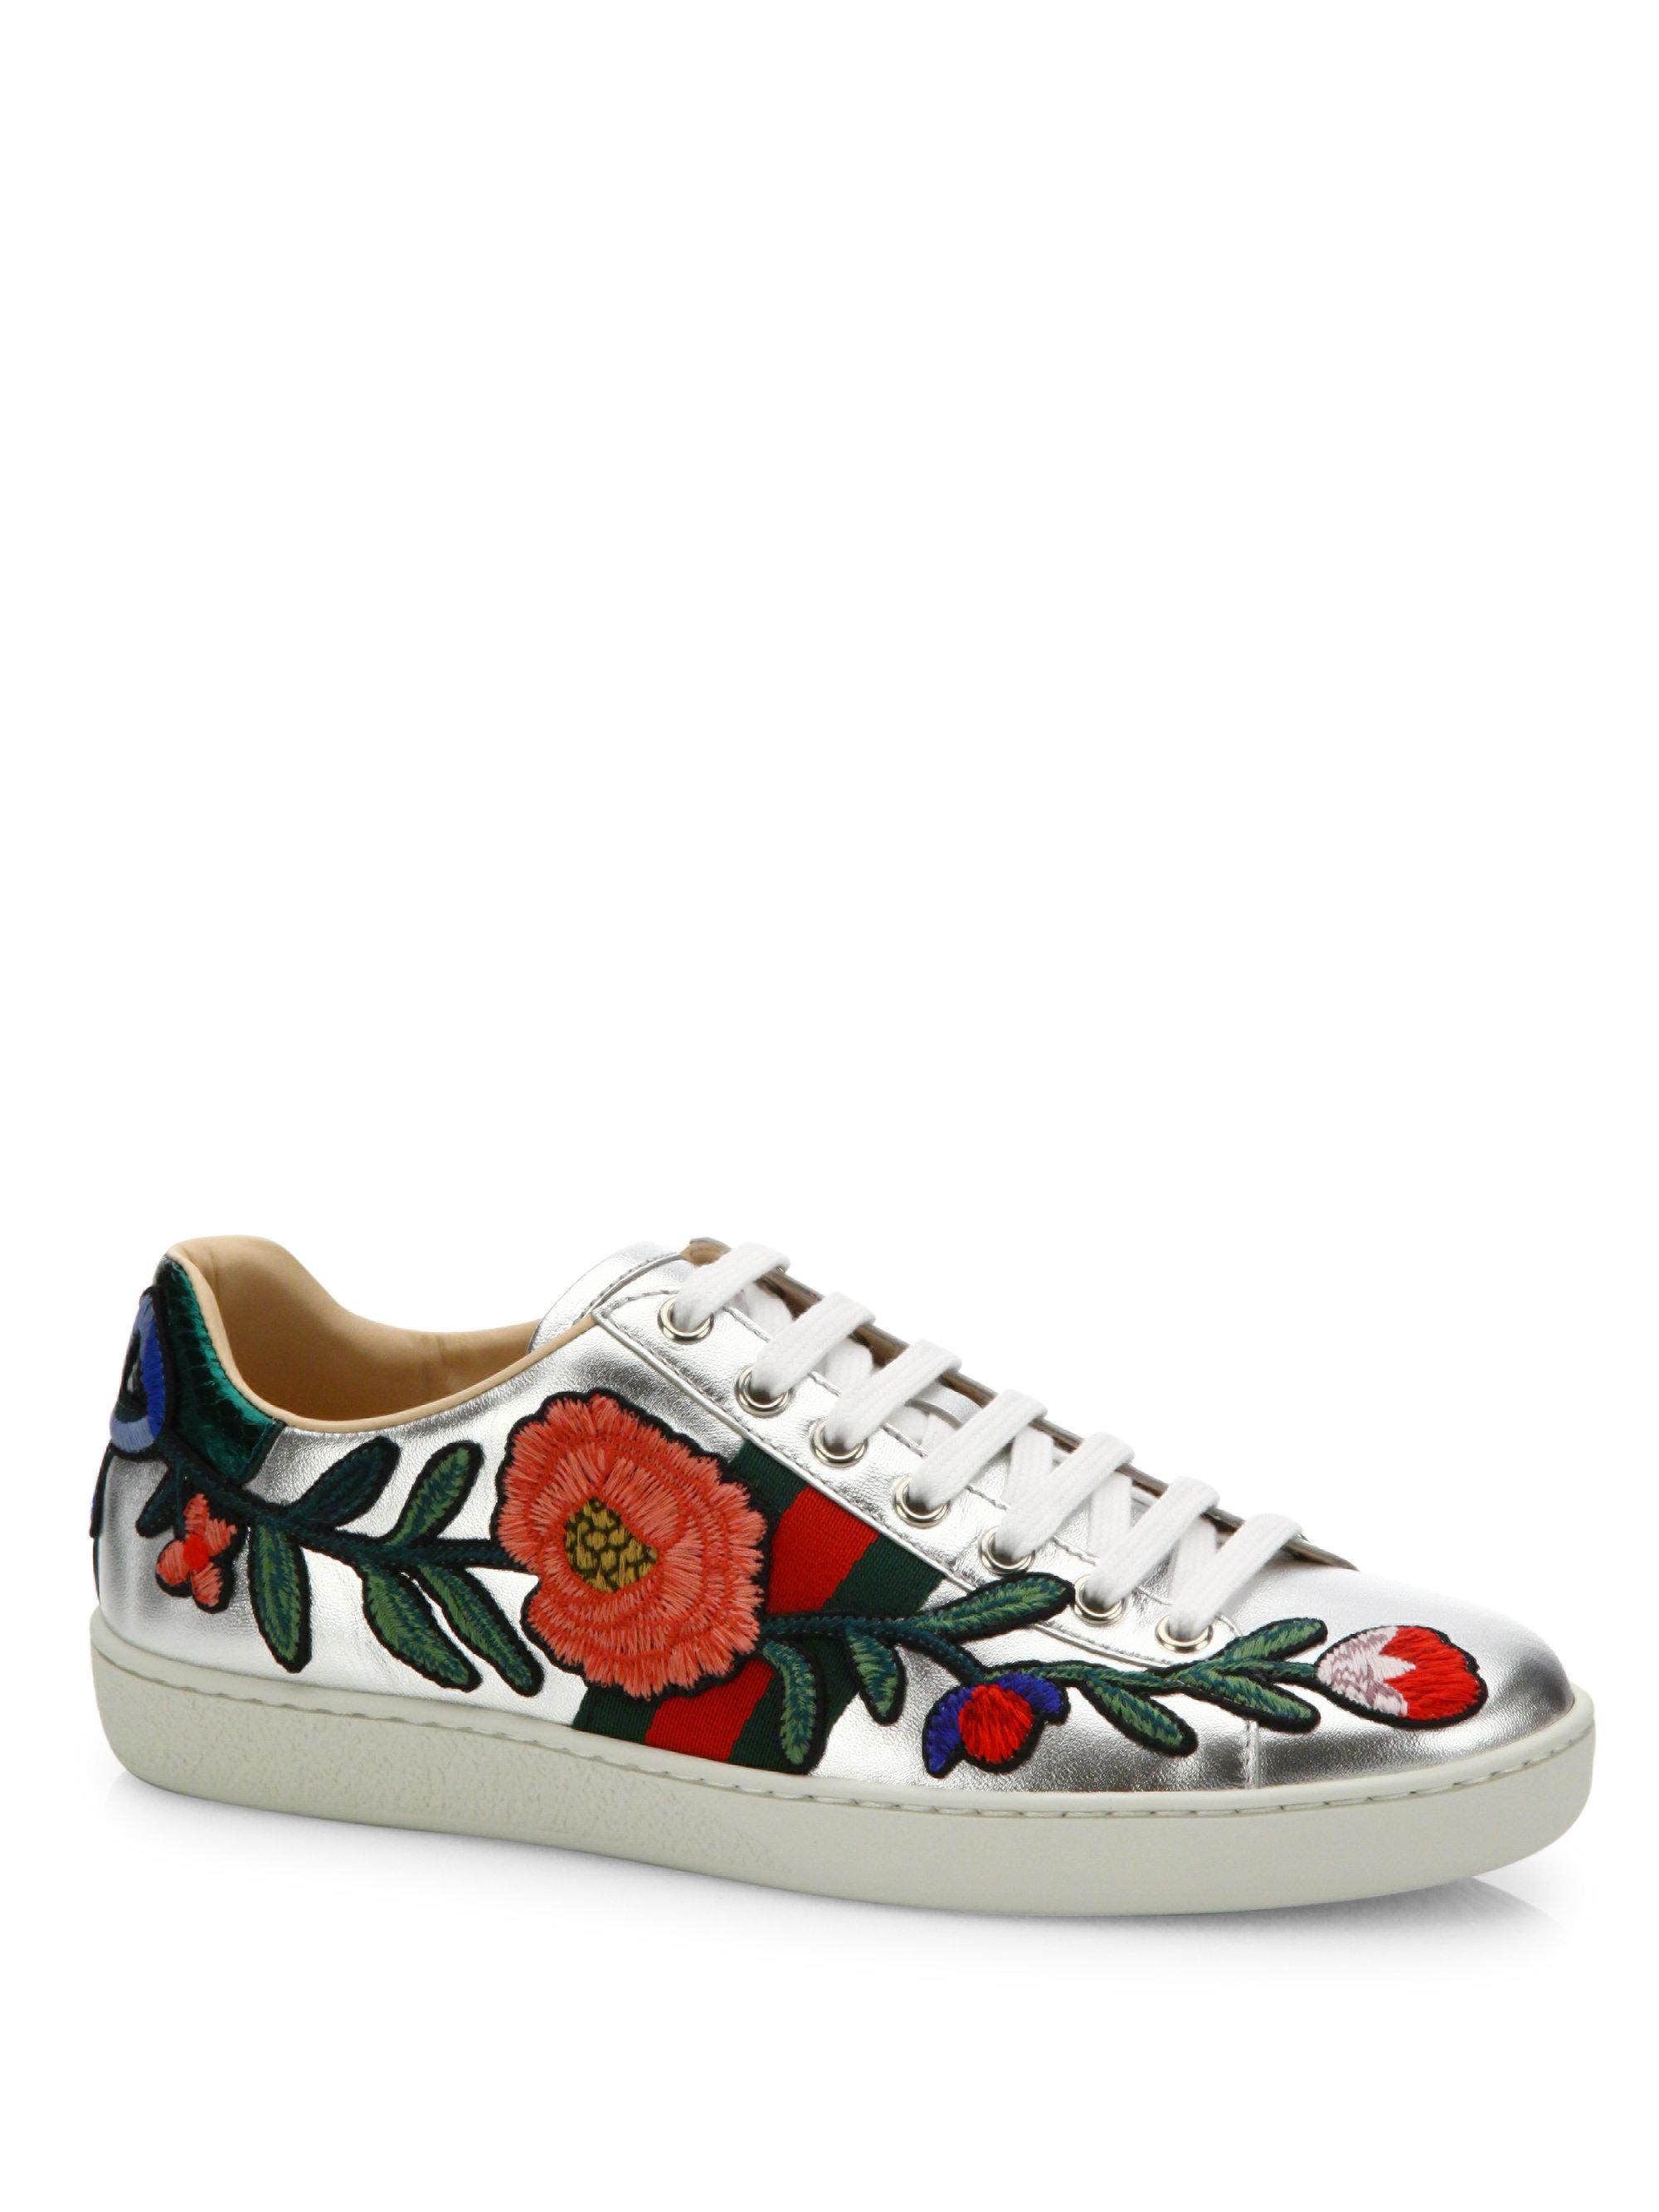 551957304535 Lyst Gucci New Ace Fl Embroidered Metallic Leather Sneakers In